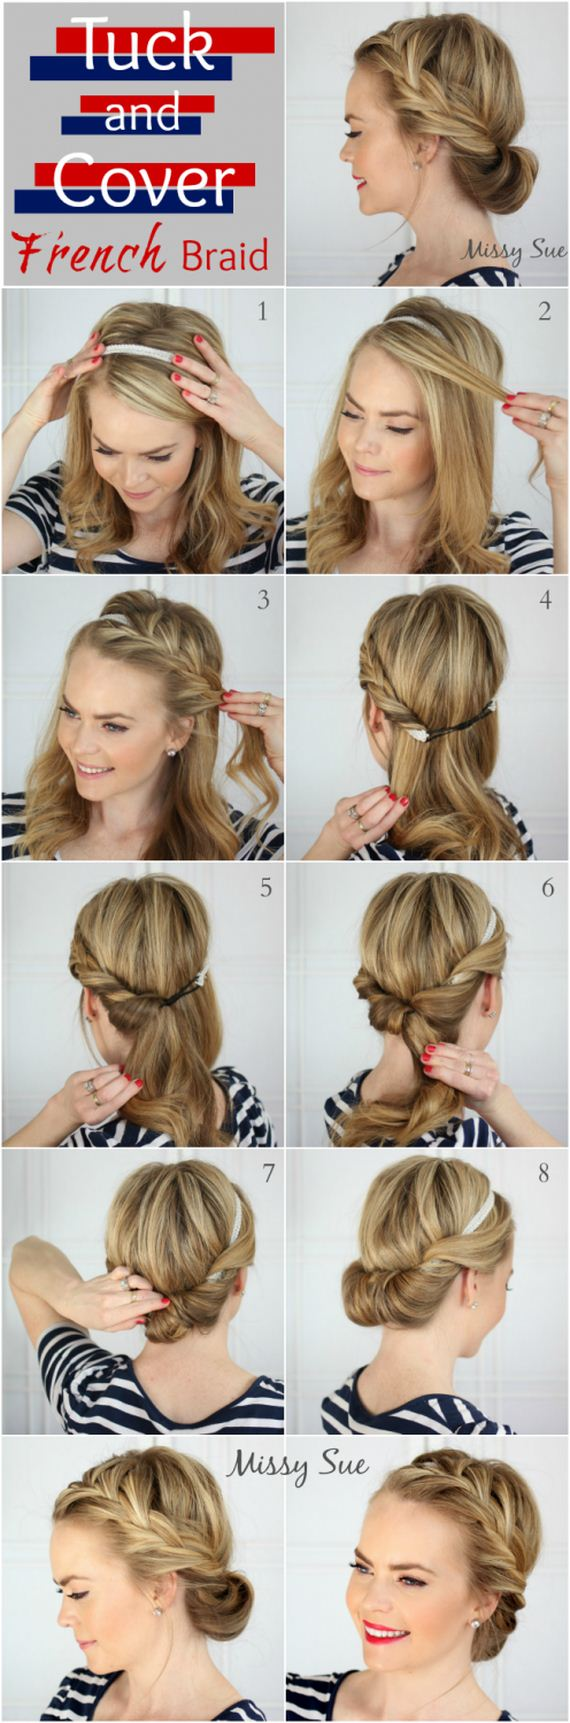 04-DIY-Hairstyles-for-Long-Hair